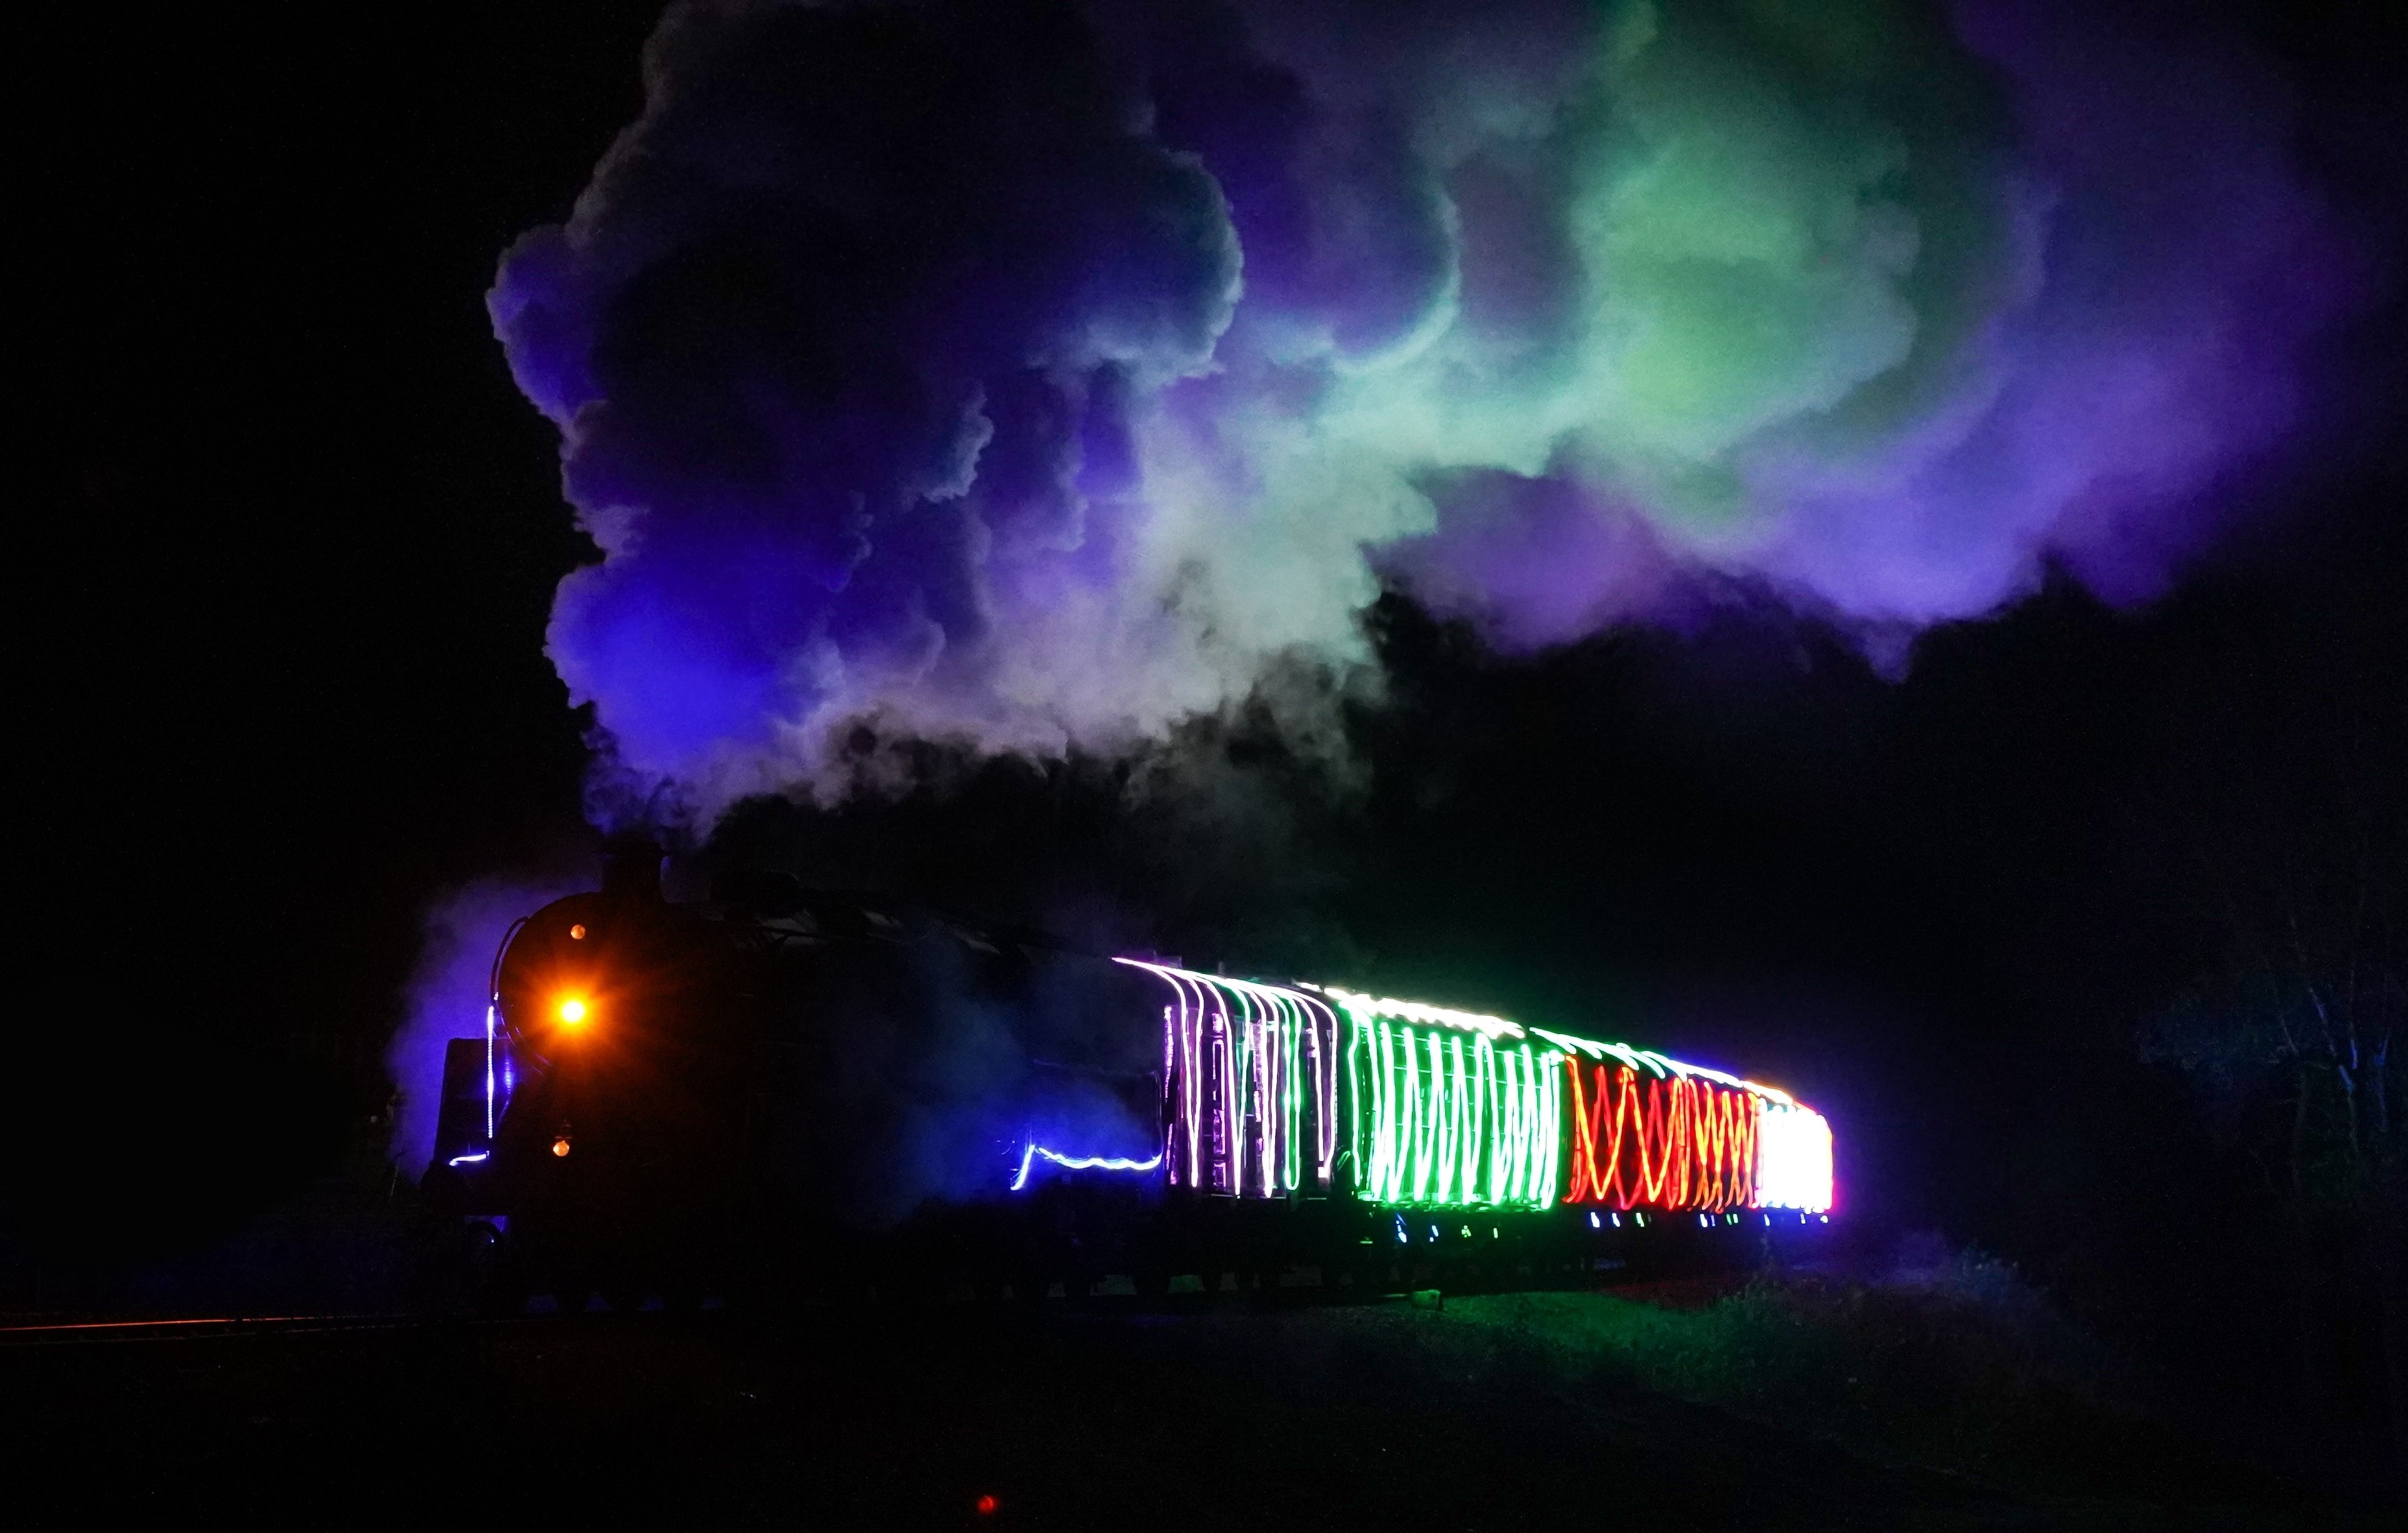 bluebell_railway_steamlights_credit_casey_photography__clare_clark_3851_01